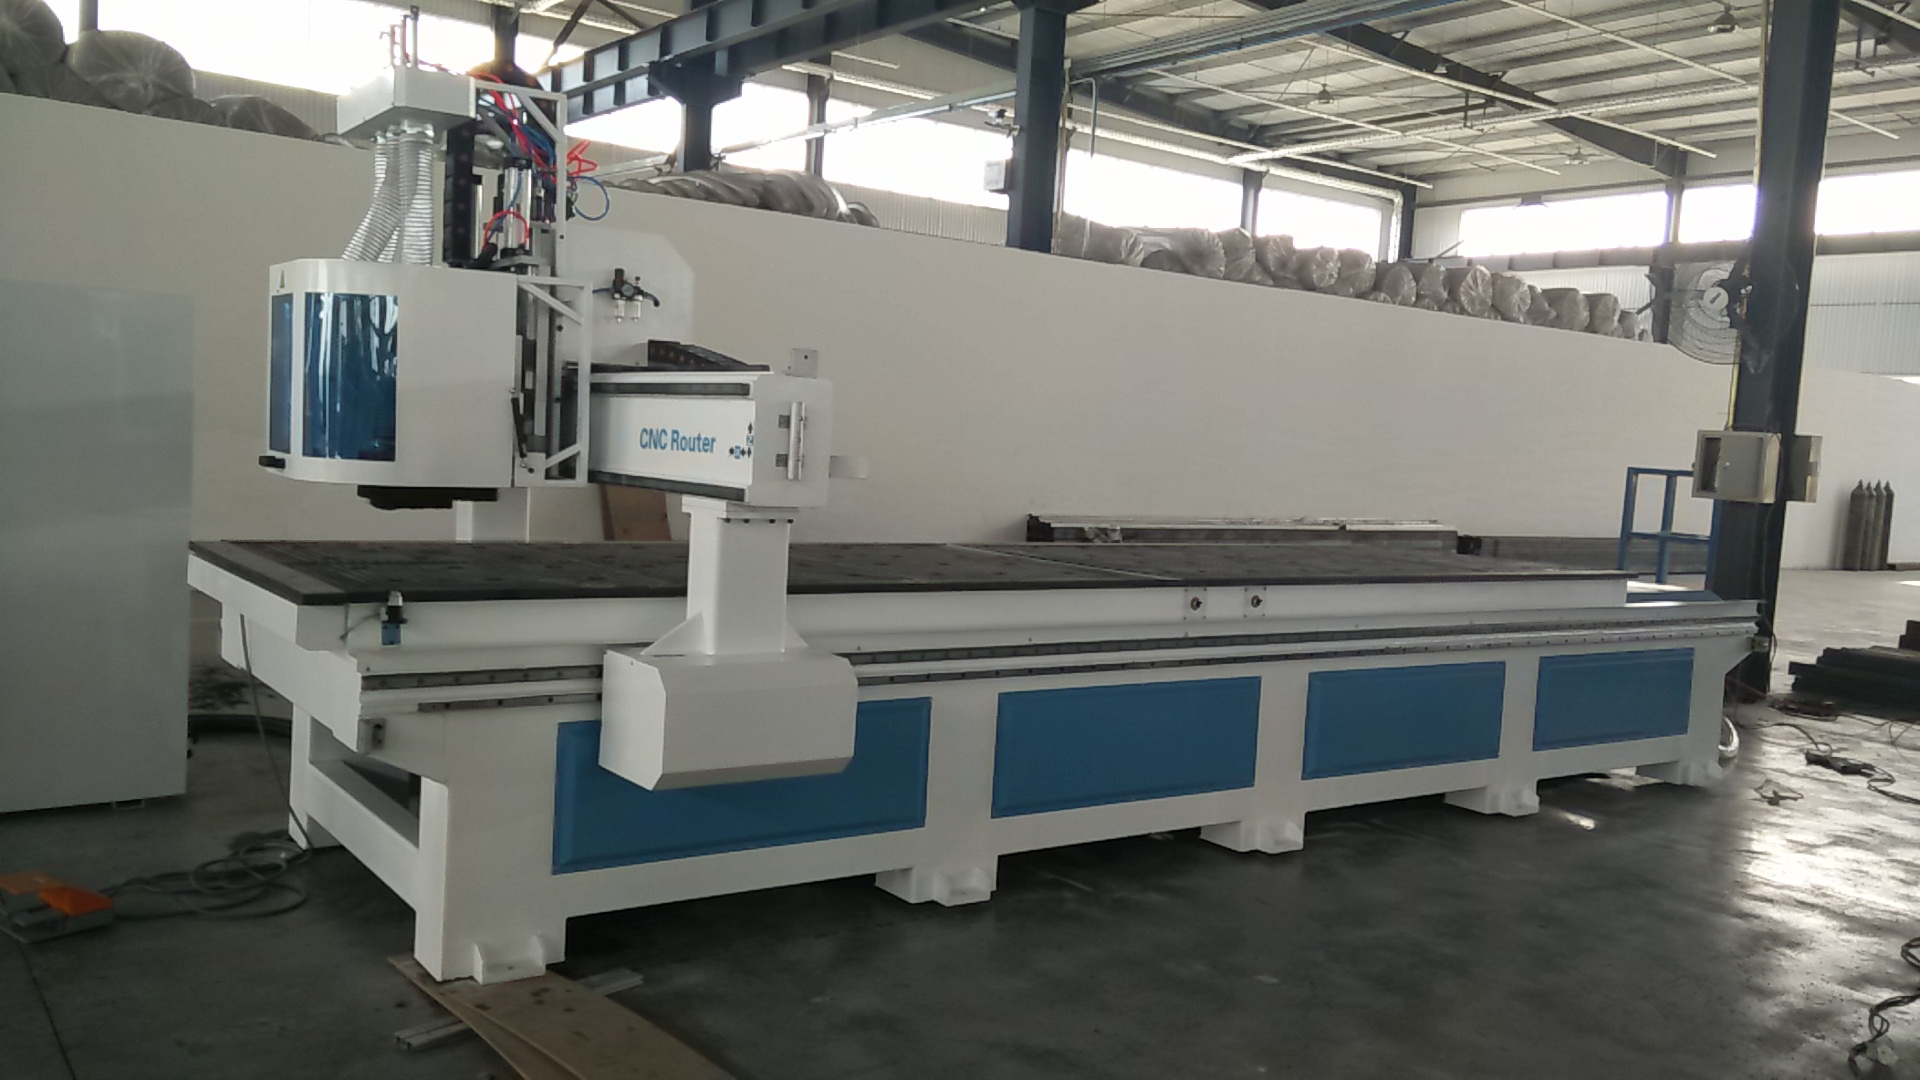 cnc router machining center